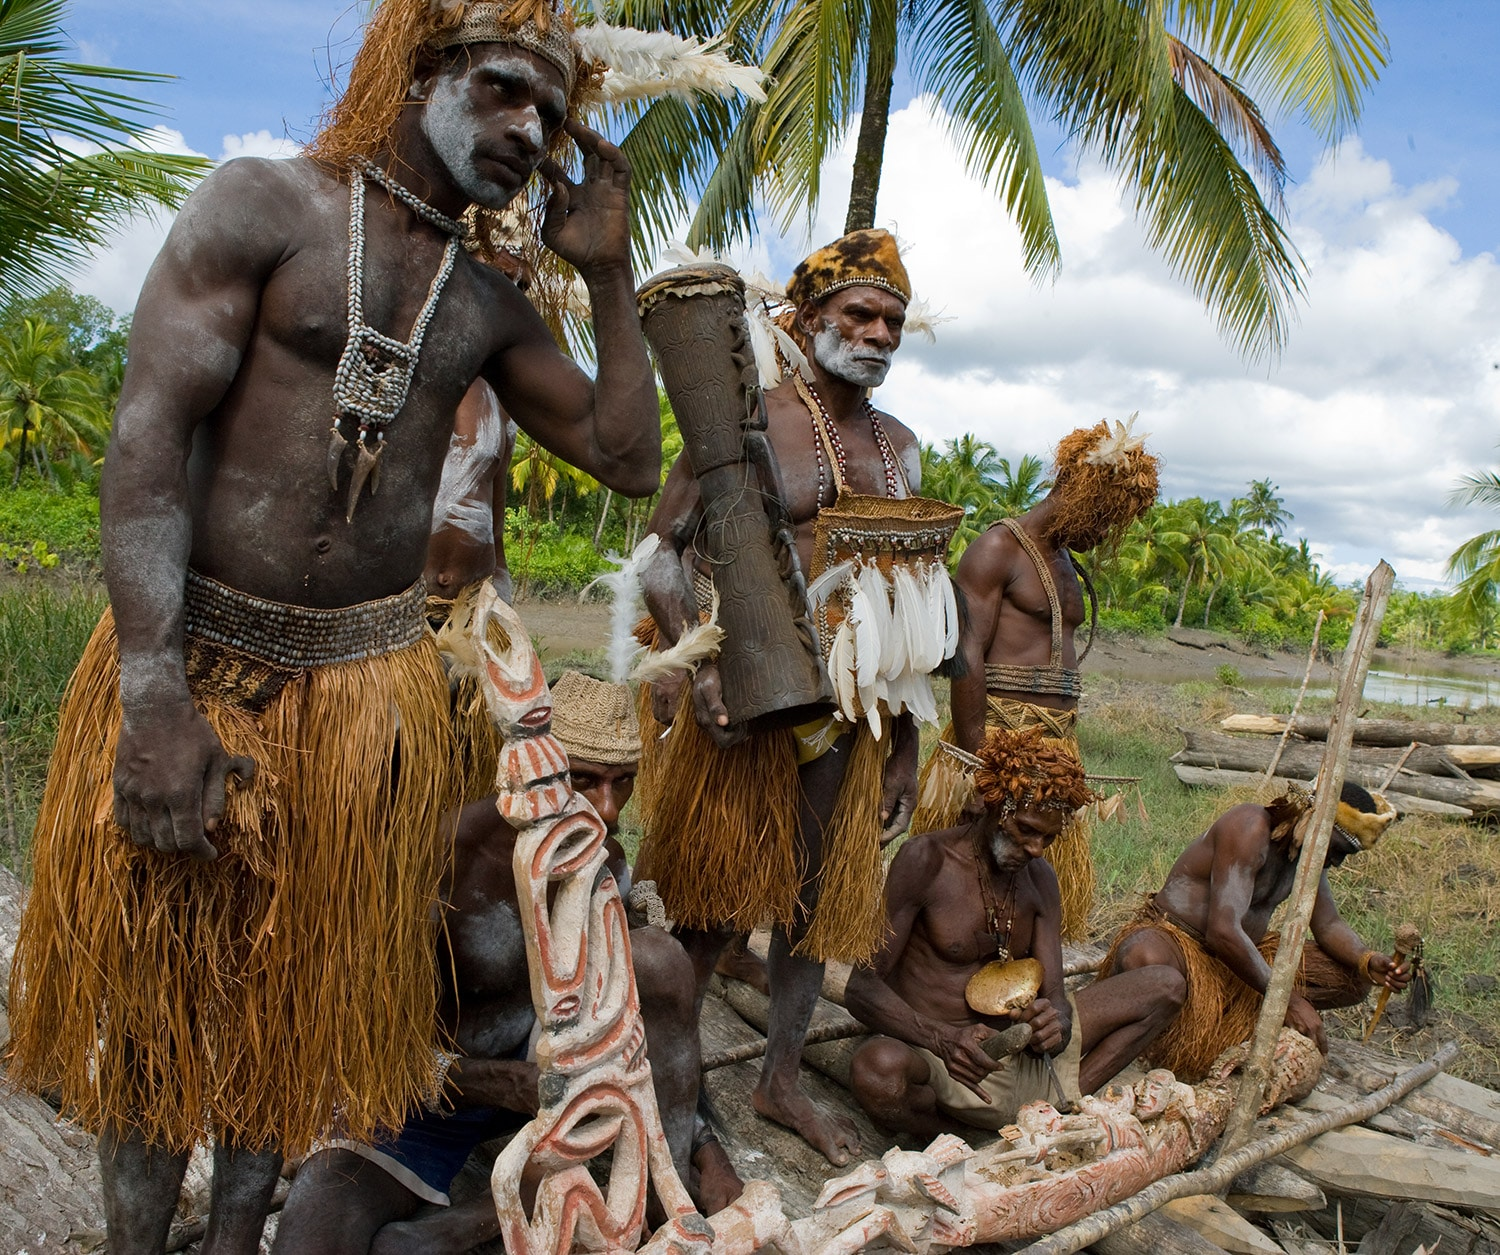 daily live of asmat community in papua